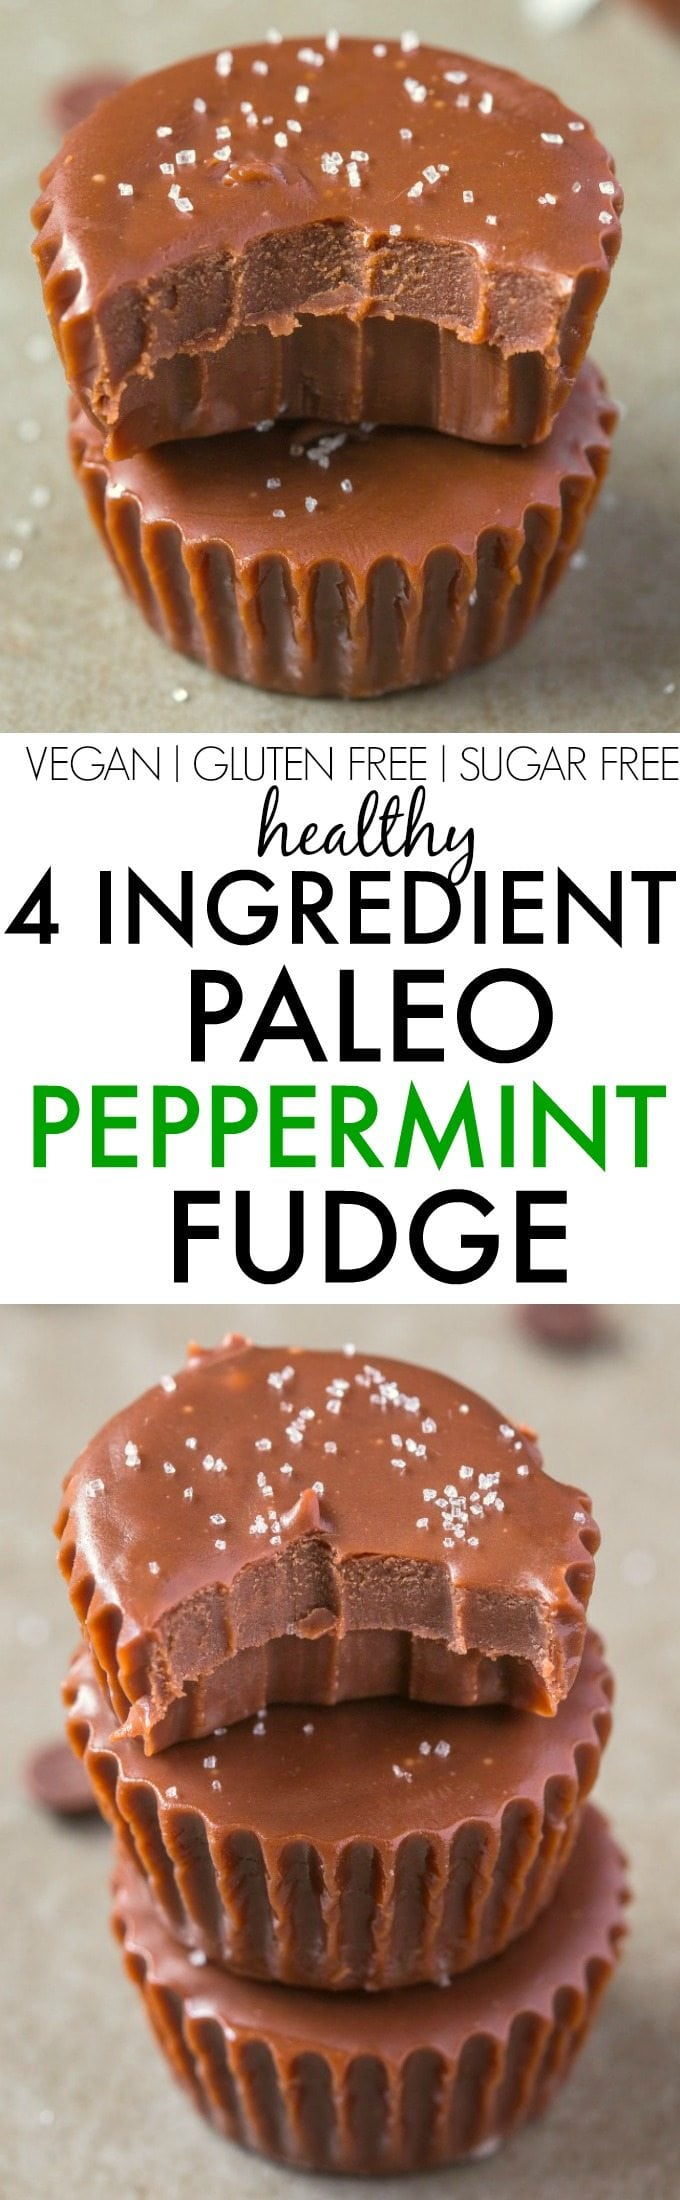 4 Ingredient Paleo Peppermint Fudge- Smooth, creamy and secretly healthy, it's made with NO condensed milk, NO dairy, NO white sugar, NO grains and ZERO butter- It's a quick, easy and healthy four-ingredient sugar free fudge treat! {vegan, gluten free, paleo recipe}- thebigmansworld.com